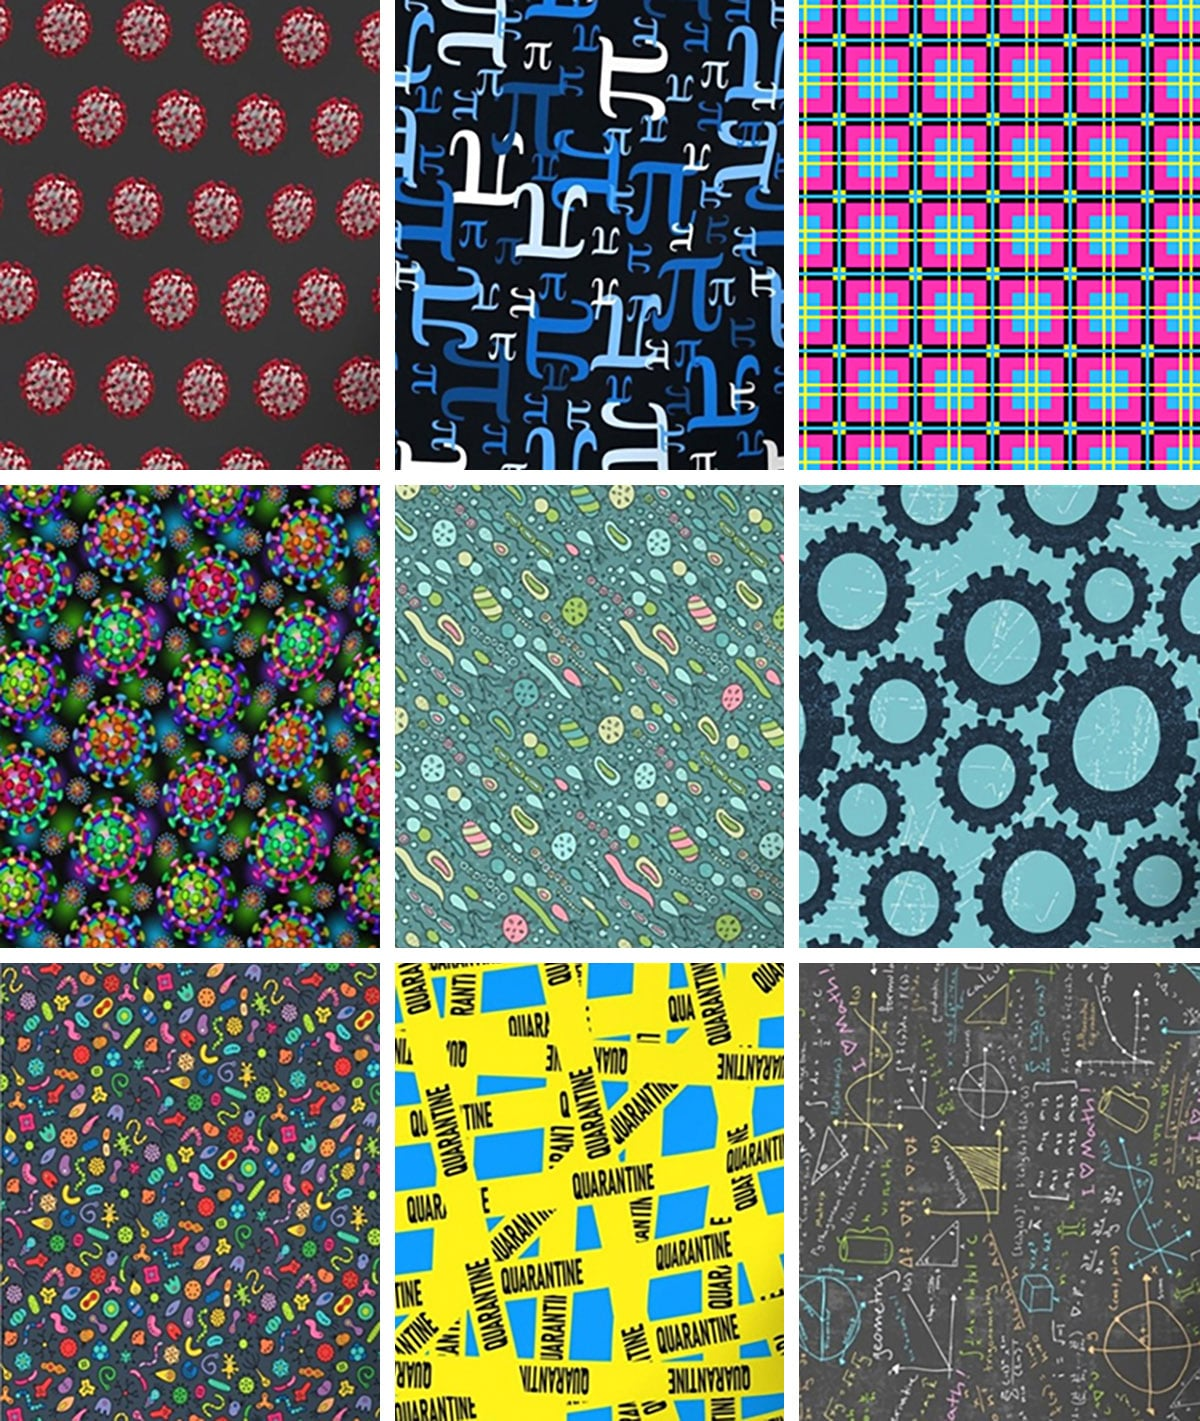 9 different brightly coloured fabric designs, most of which feature bacteria or virus illustrations.